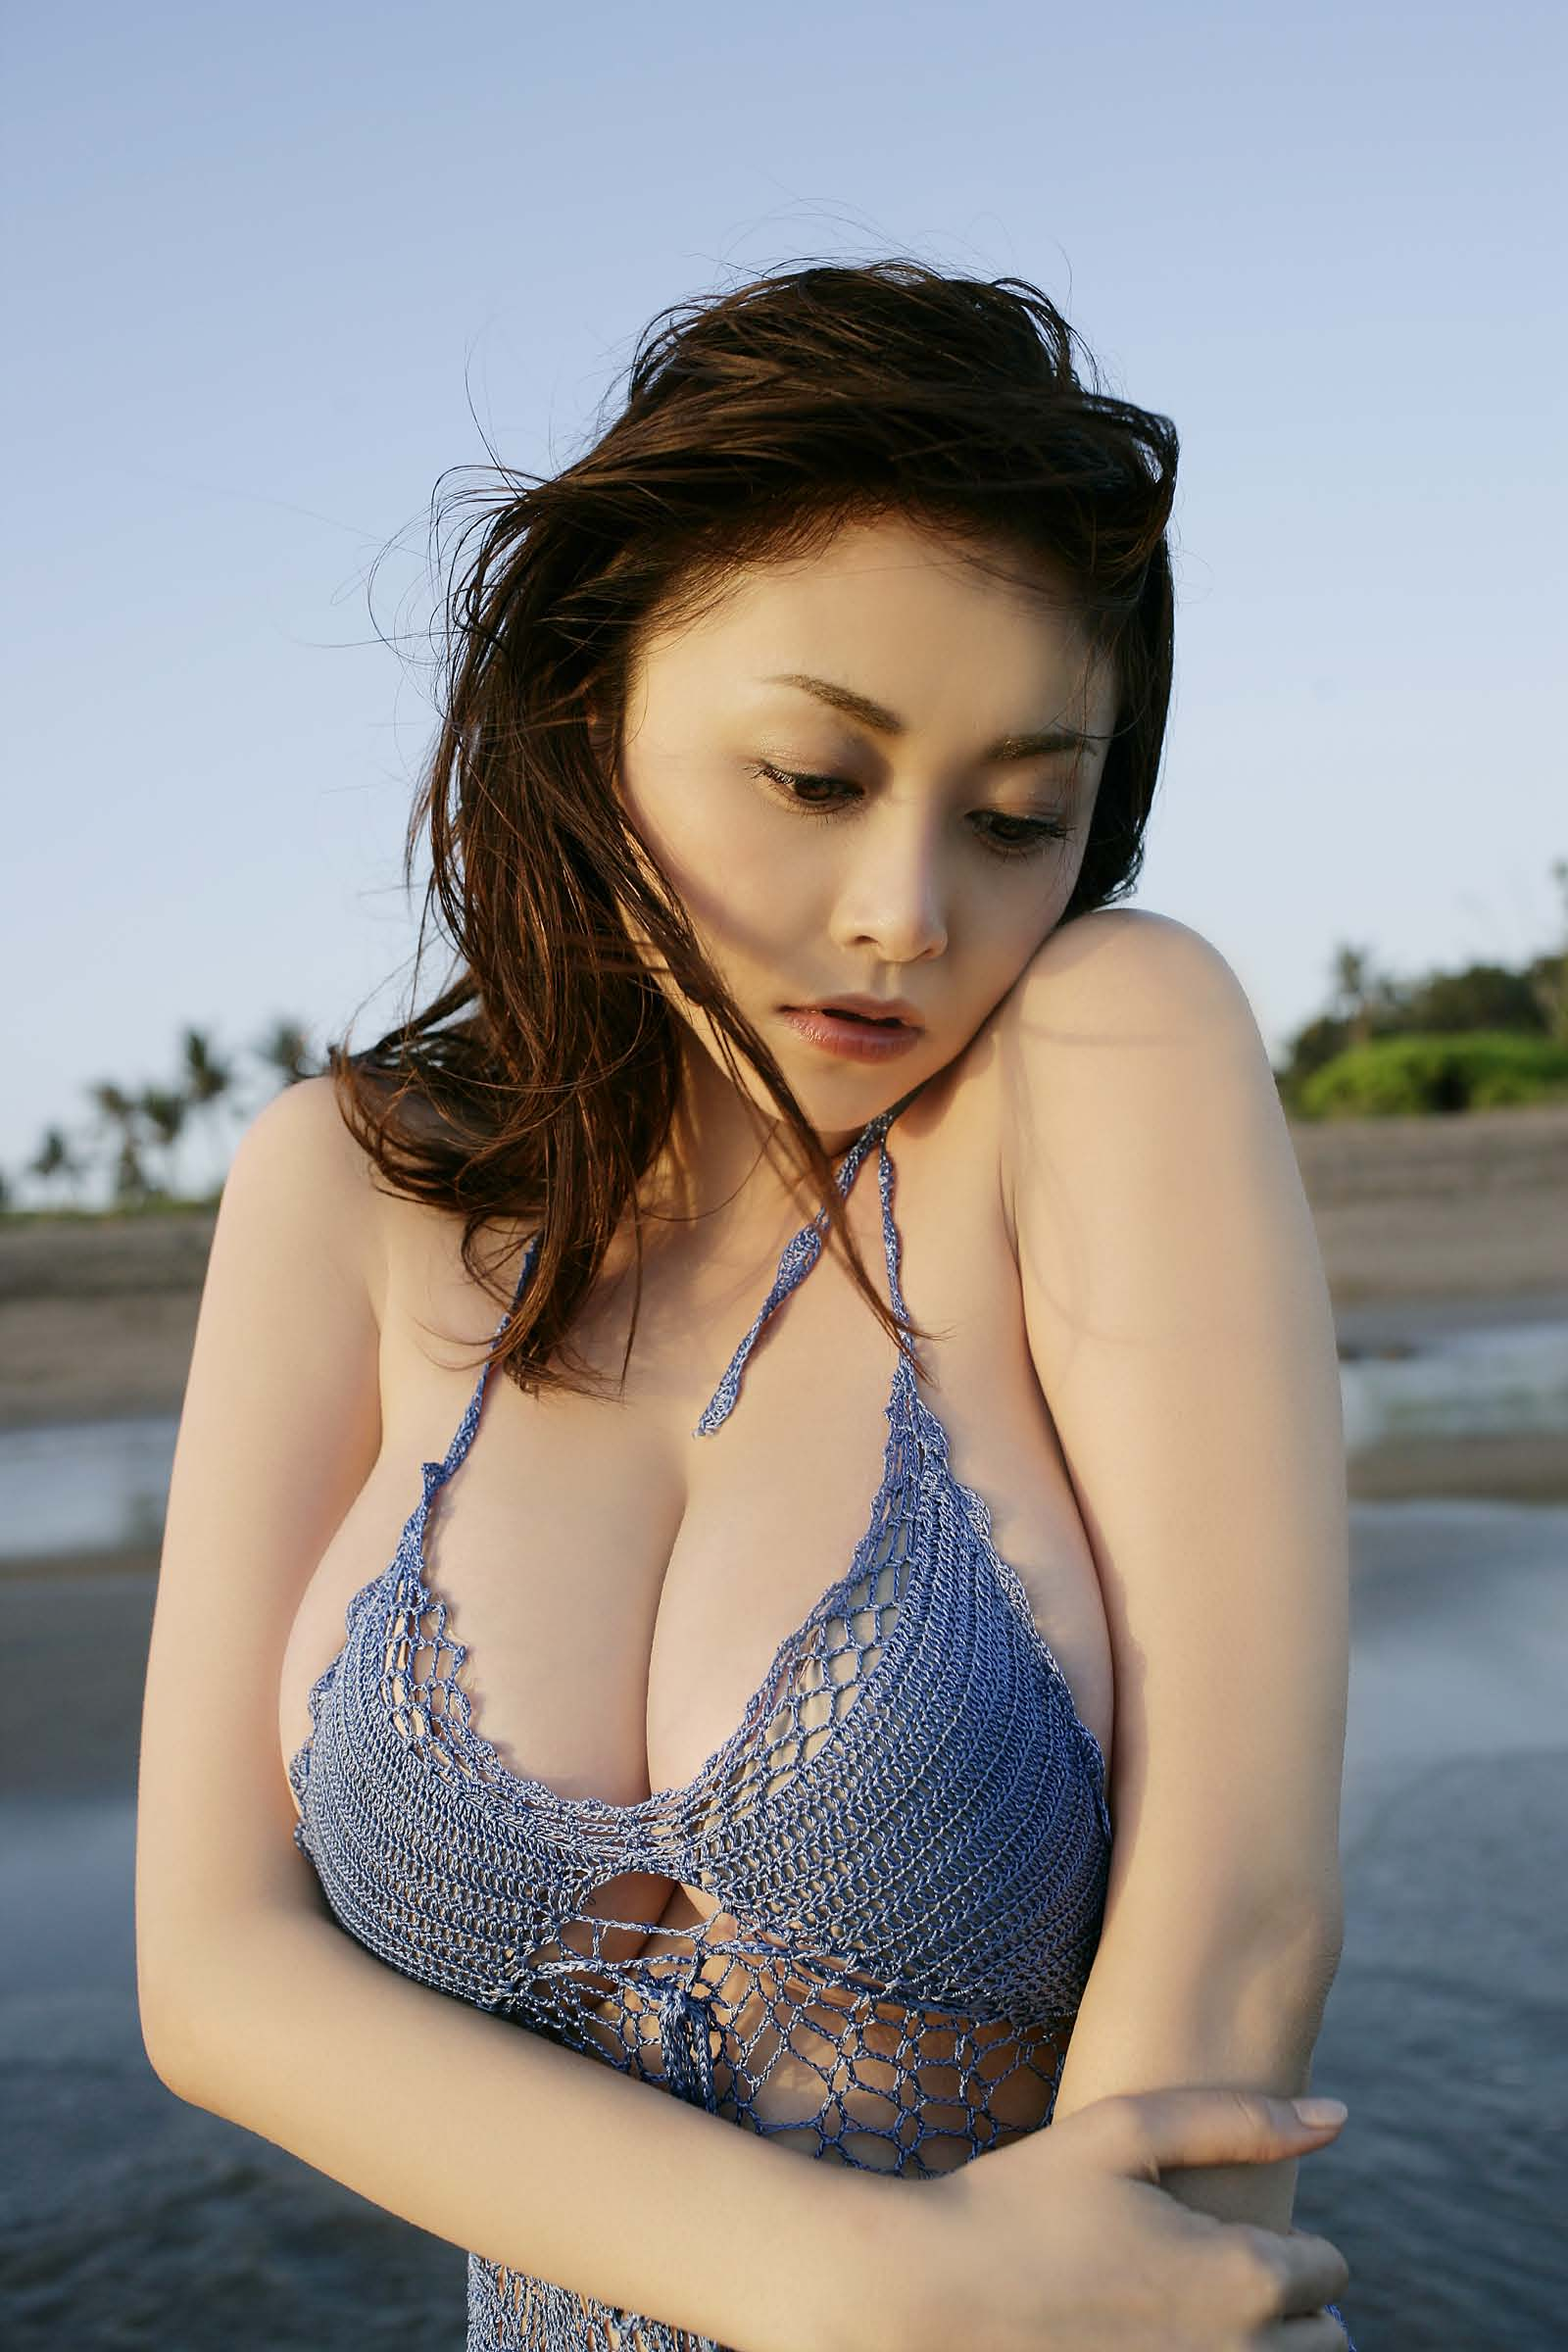 kimber day in porn videos wicked pictures #AnriSugihara #busty #bustyasian #asian #BigAsianTits #nonnude  bigtits #bignaturalbreasts #model #Japanese #underboob